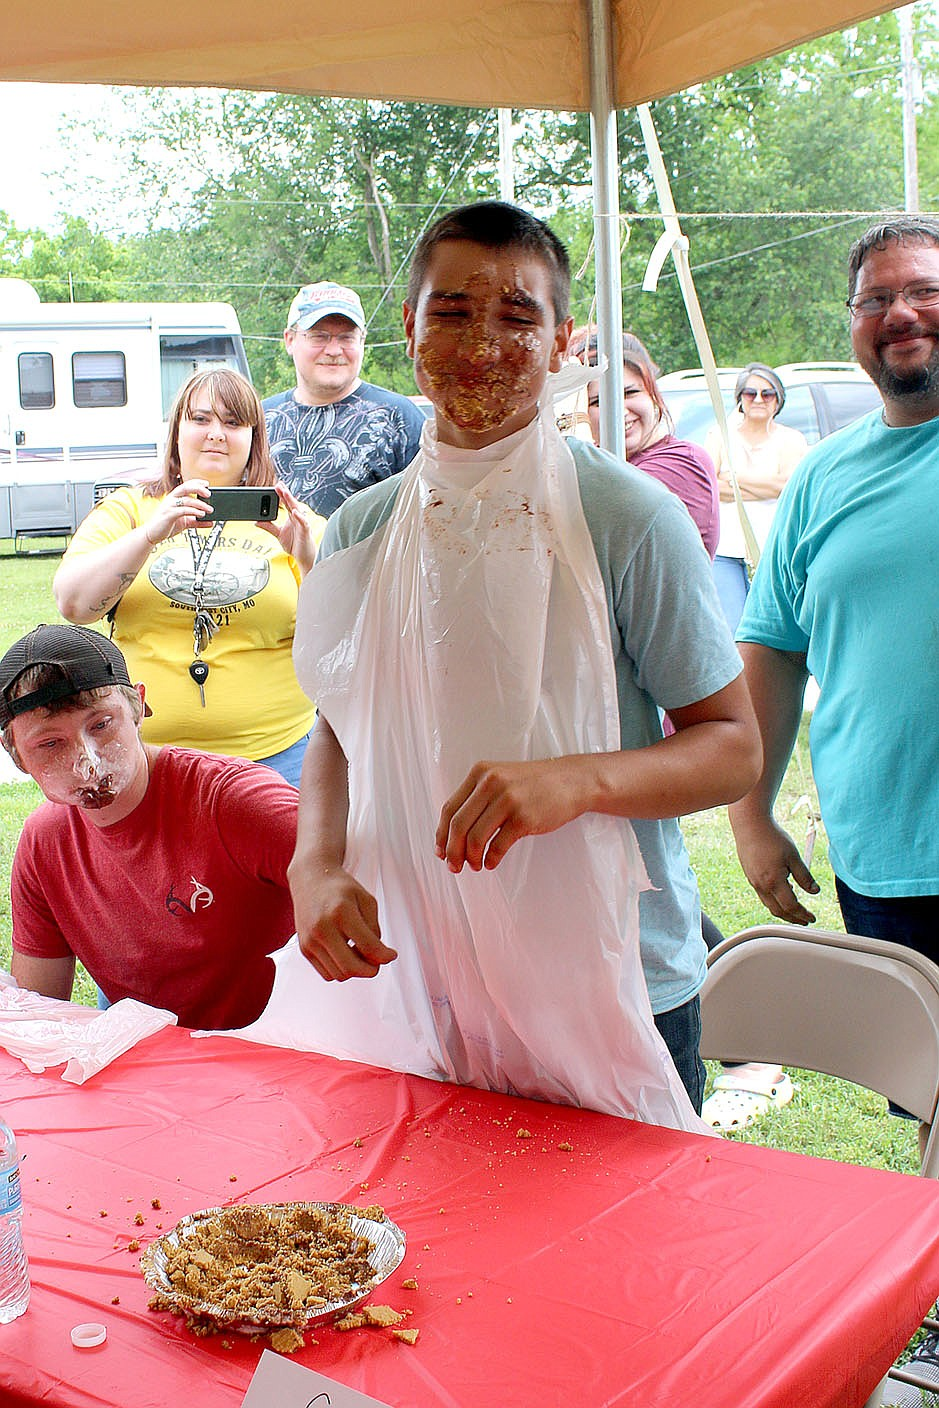 MEGAN DAVIS/MCDONALD COUNTY PRESS Colby Derrick grins with a face full of pride and chocolate pudding after narrowly winning the 2021 Old Timer's Day Pie Eating Contest.